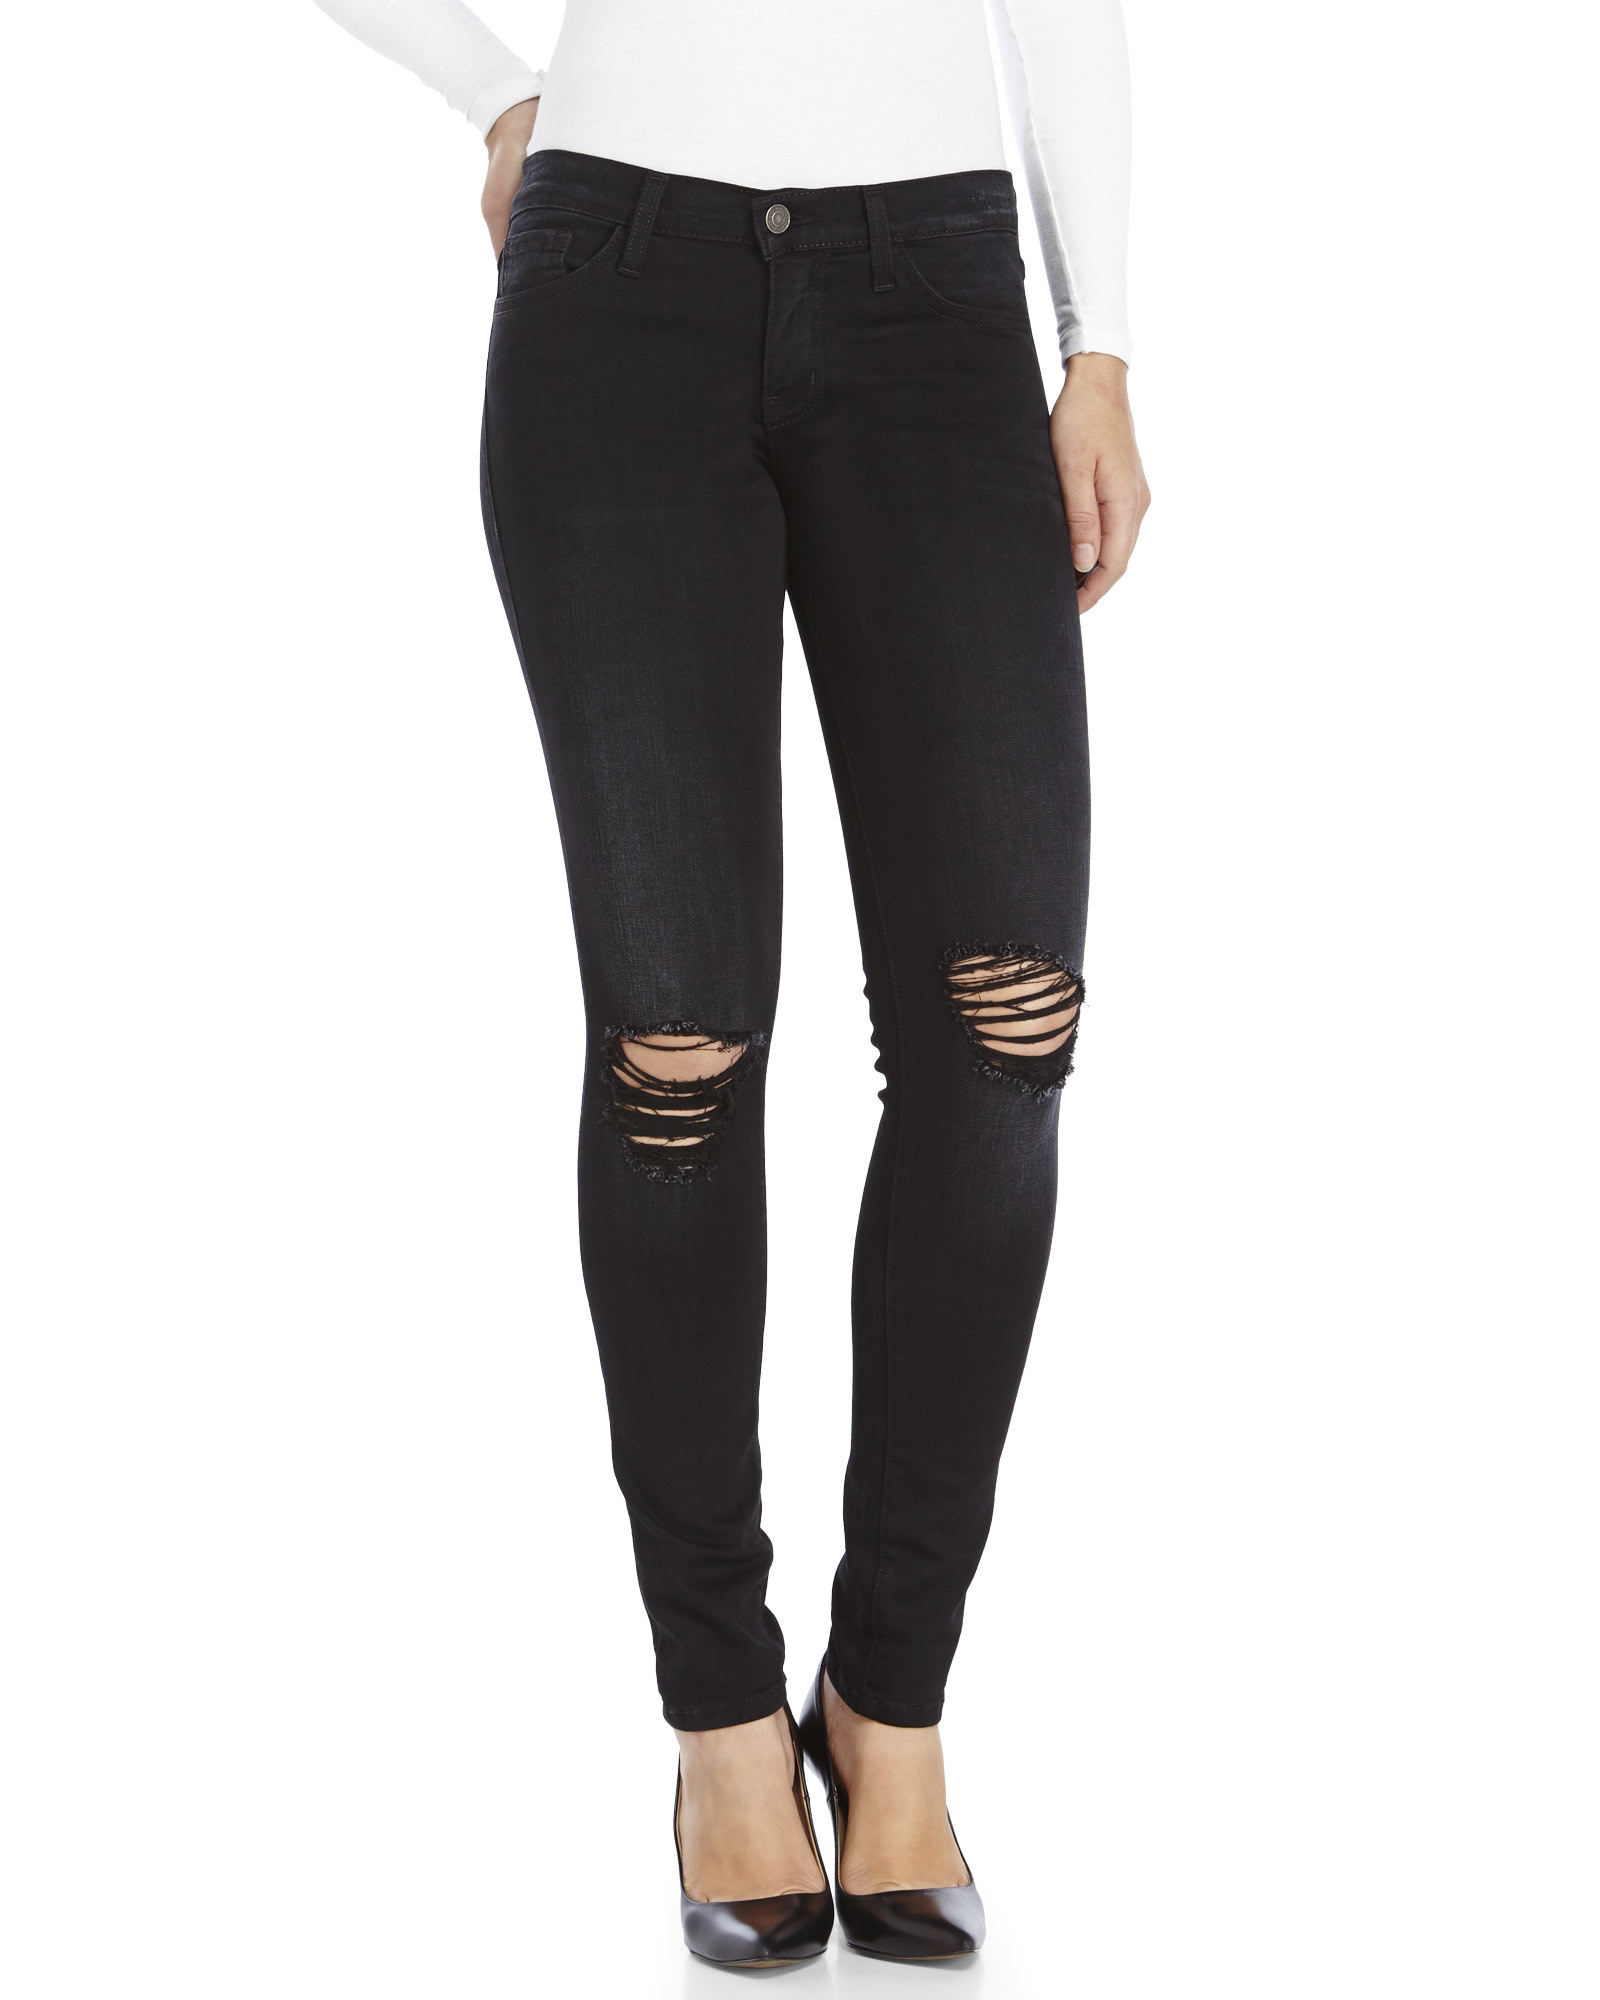 Free shipping and returns on Women's Black Wash Skinny Jeans at reformpan.gq